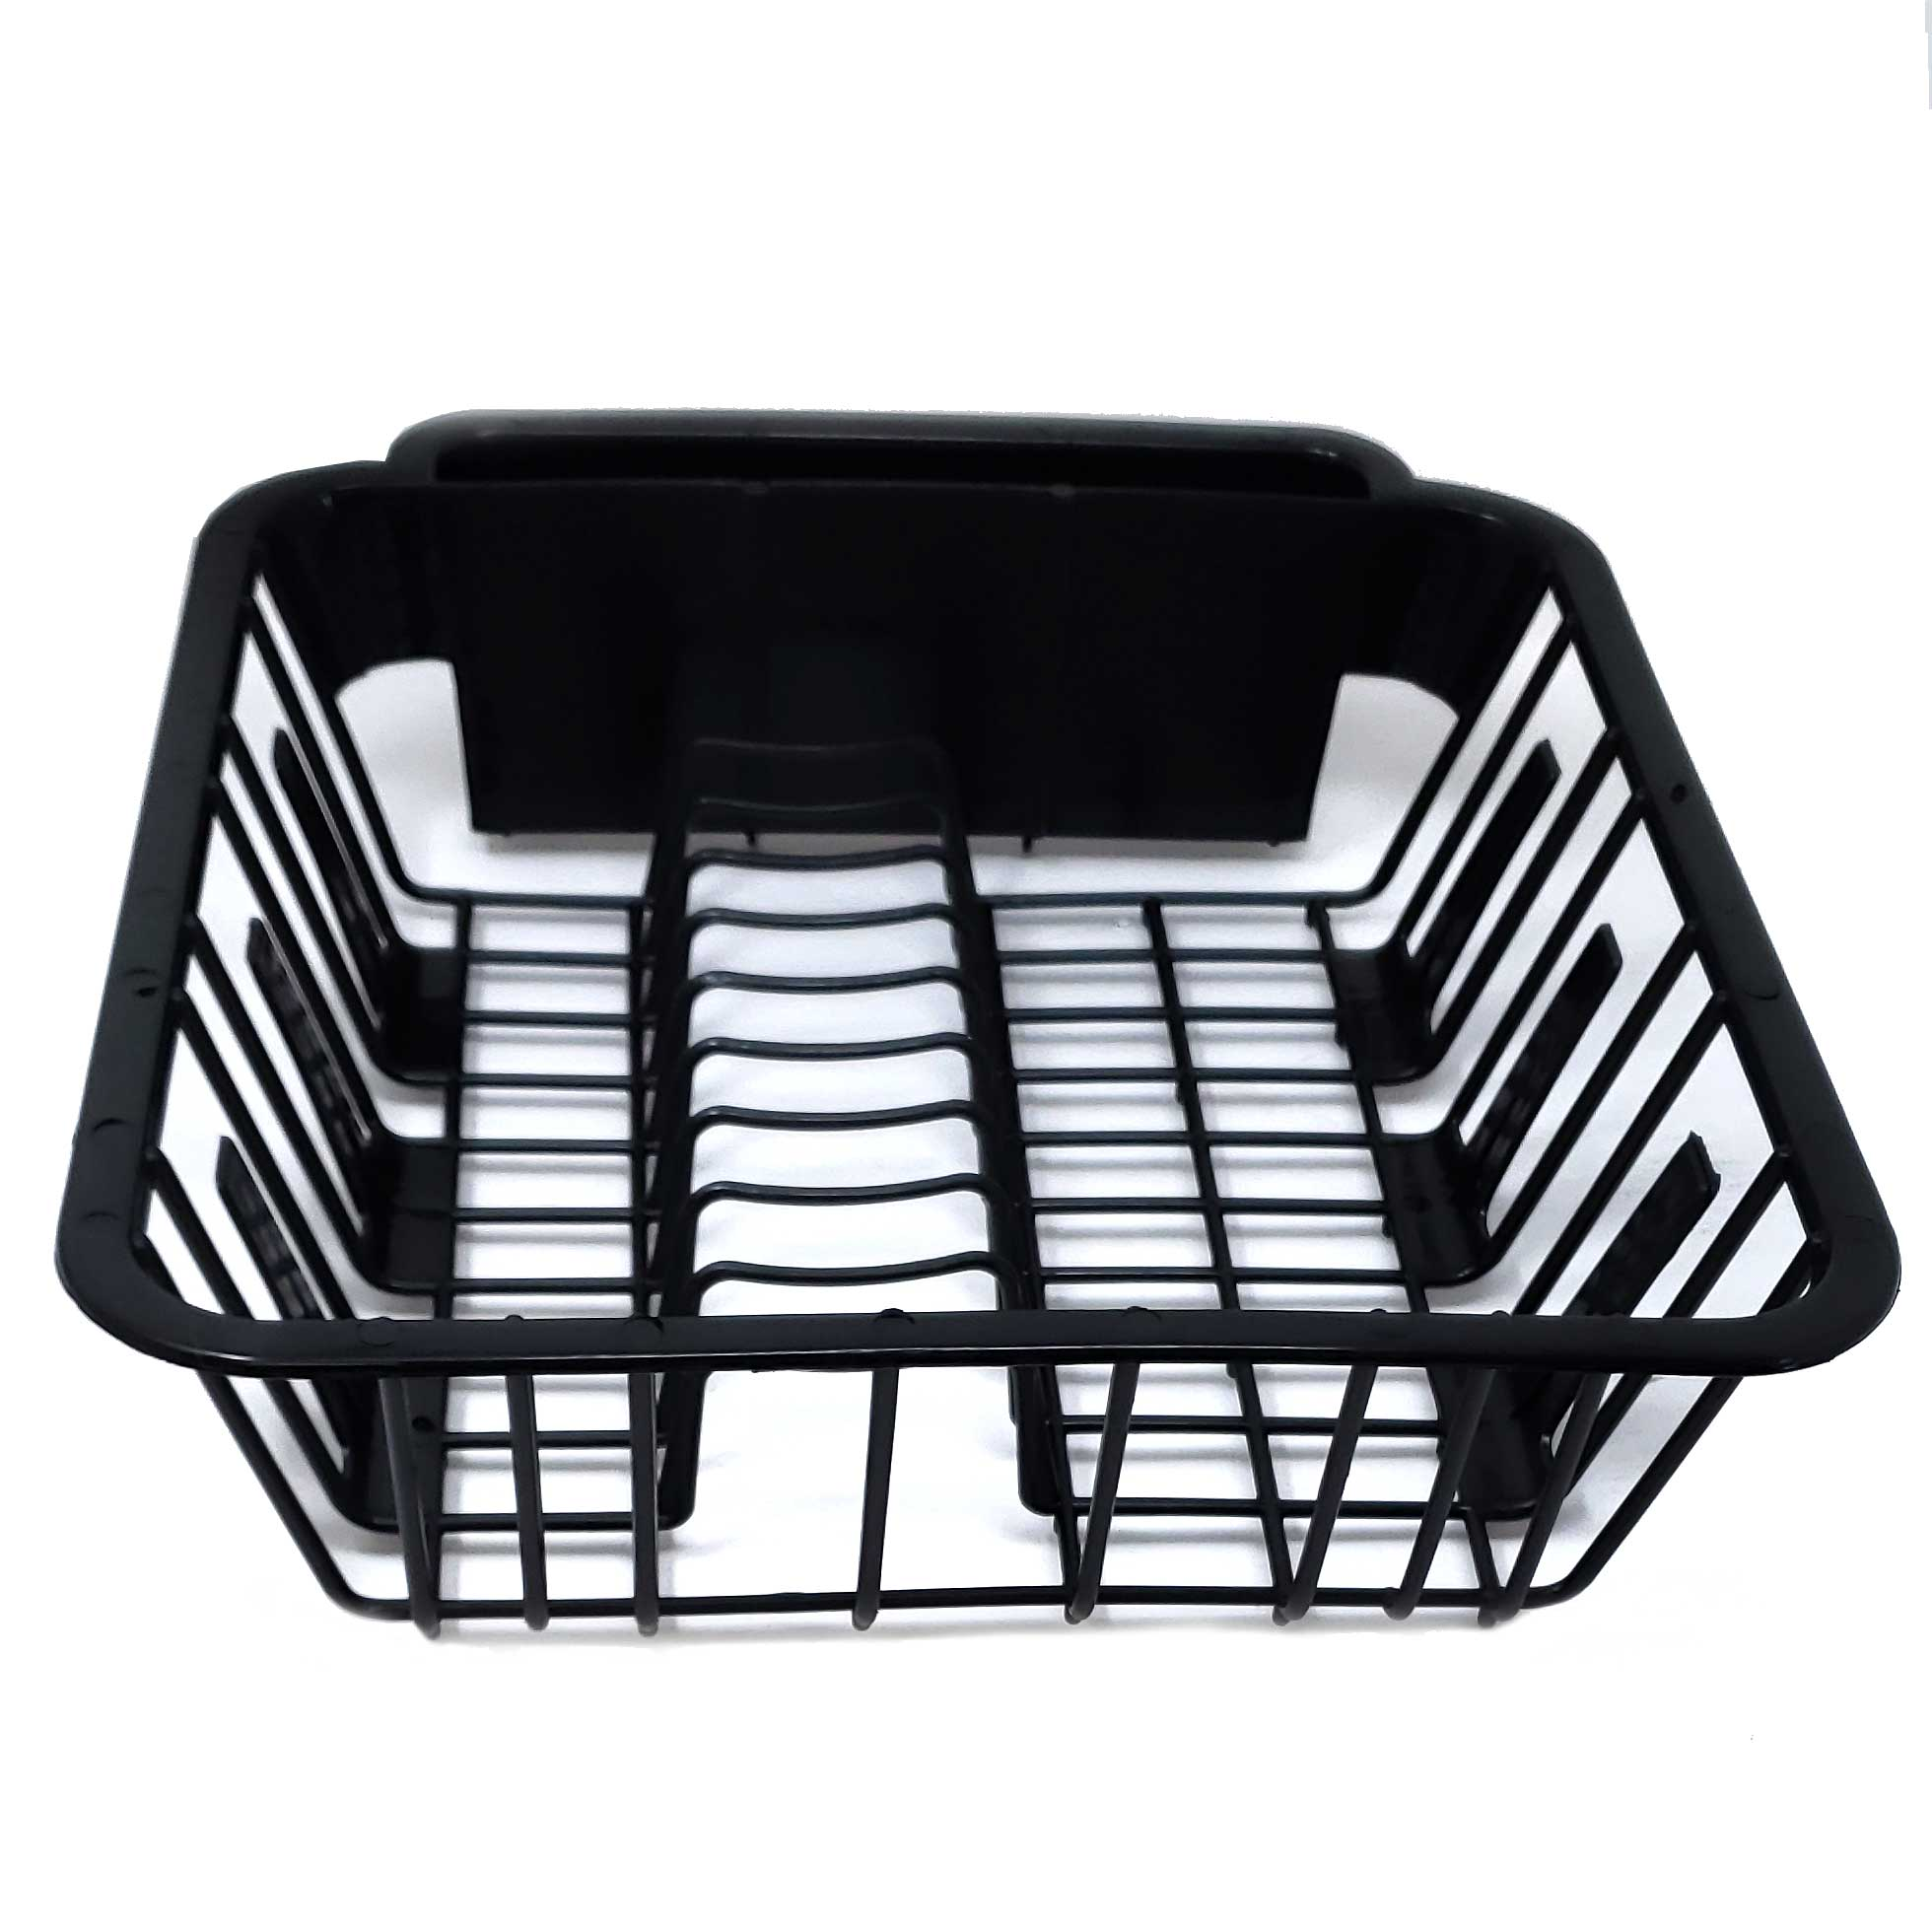 Ordinaire BPA Free Small Dish Drainer Kitchen Sink Drying Rack